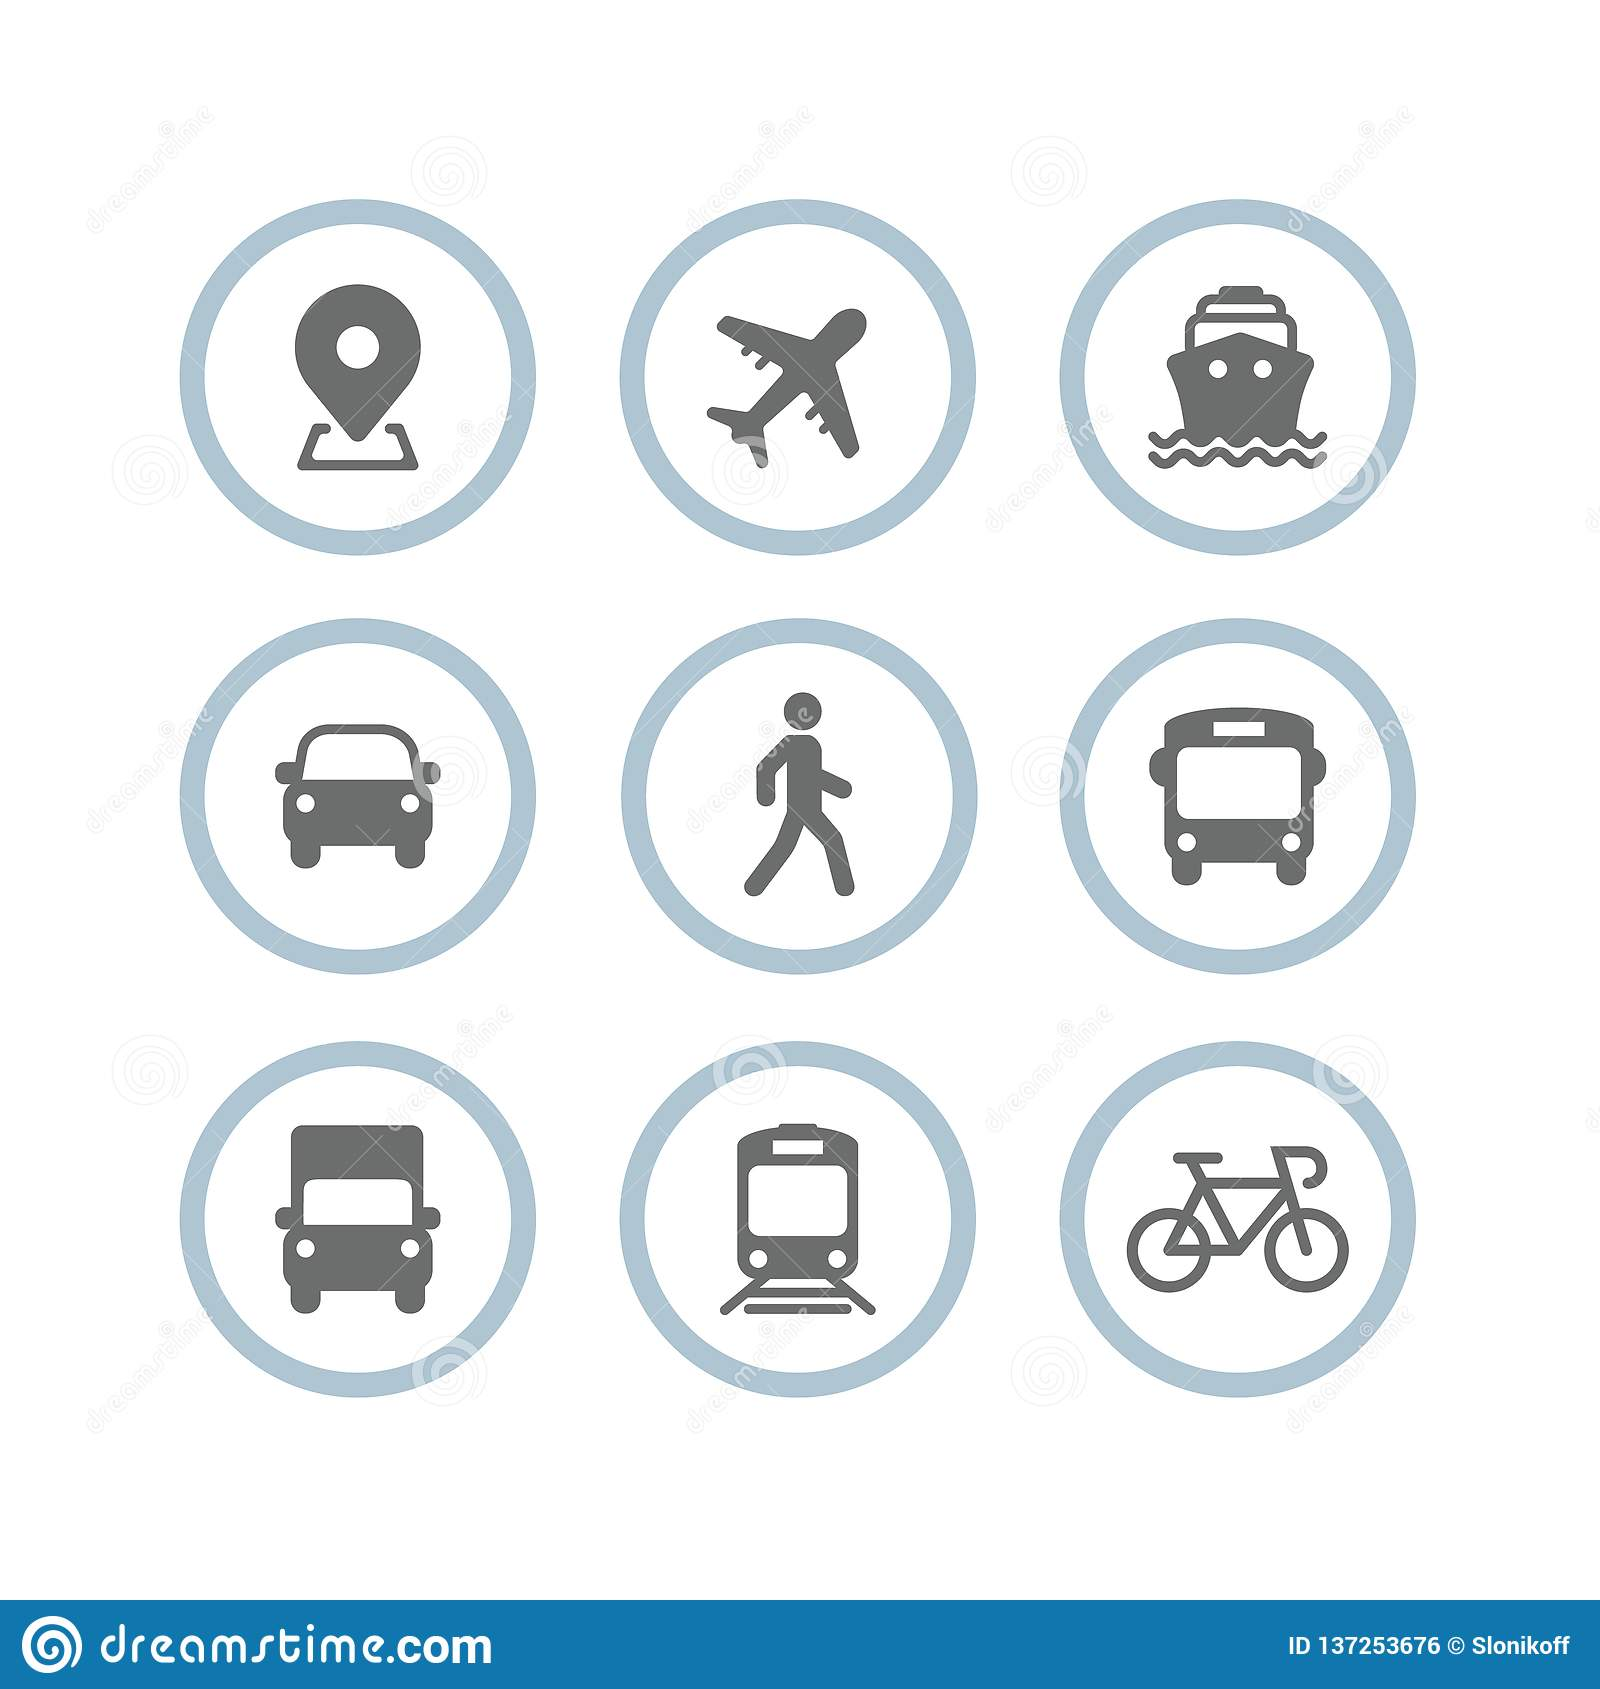 Transport icons. Airplane, Public bus, Train, Ship/Ferry, Car, walk man, bike, truck and auto signs. Shipping delivery symbol. Air